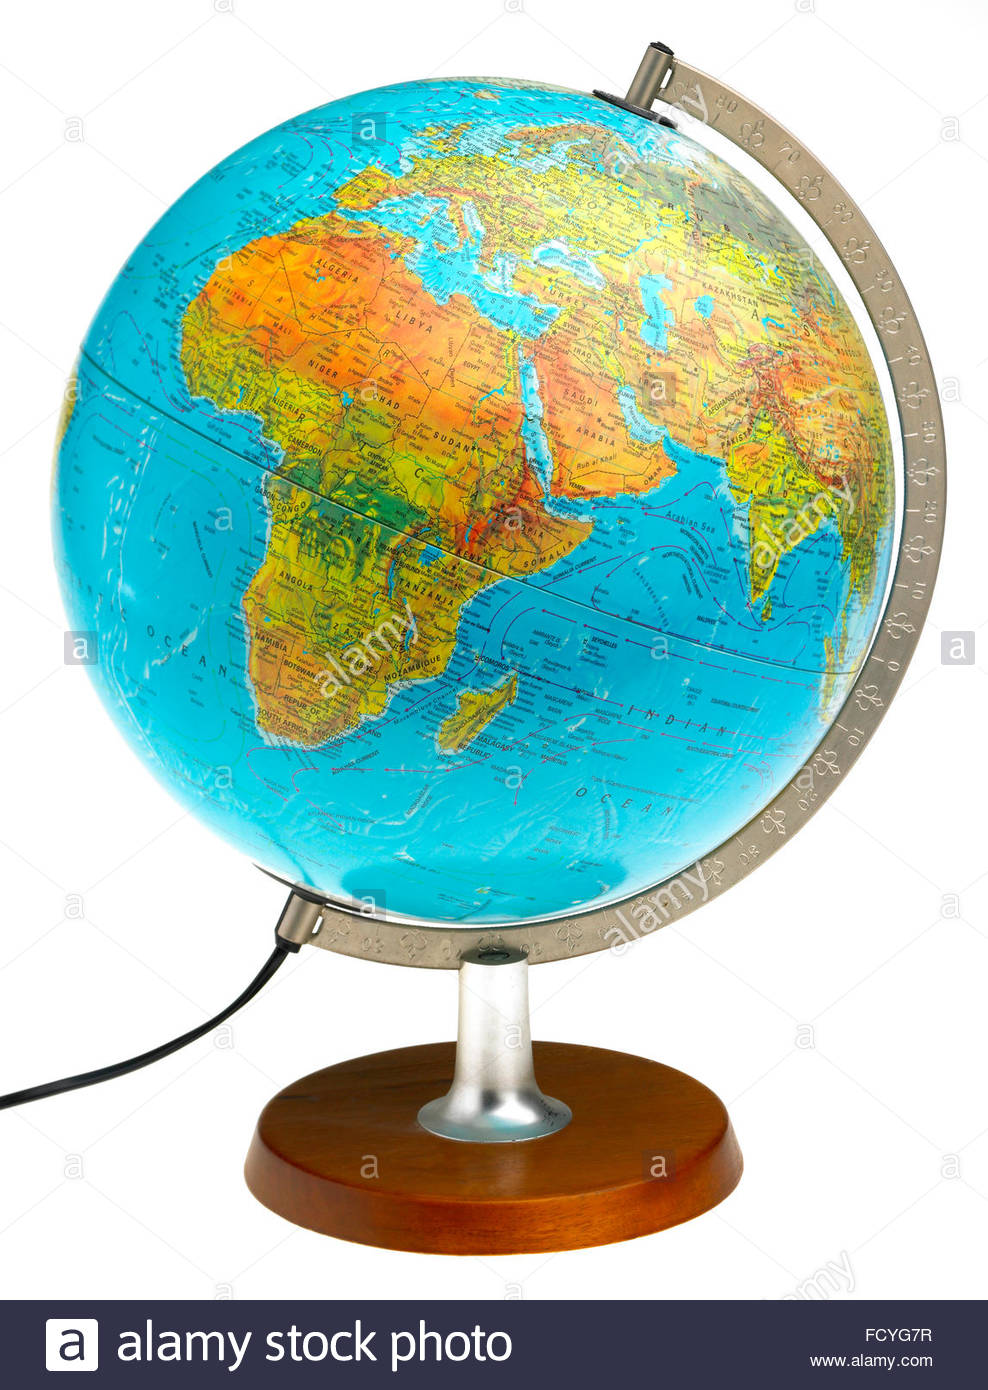 World whole globe illuminated map plastic and translucent